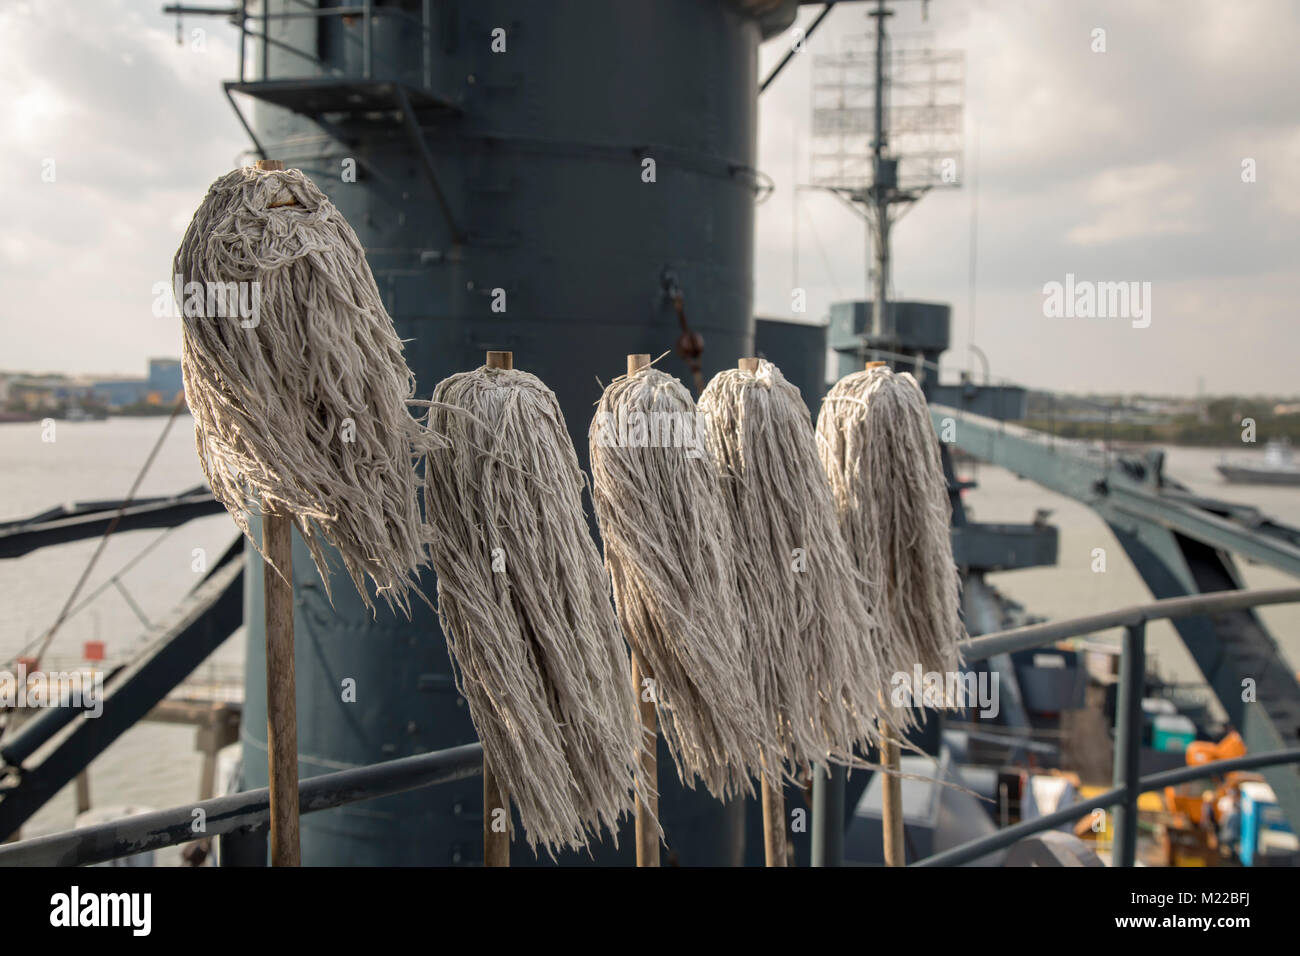 Houston, Texas - Mops on the Battleship Texas, which served in World War I and World War II. The ship is new a museum - Stock Image